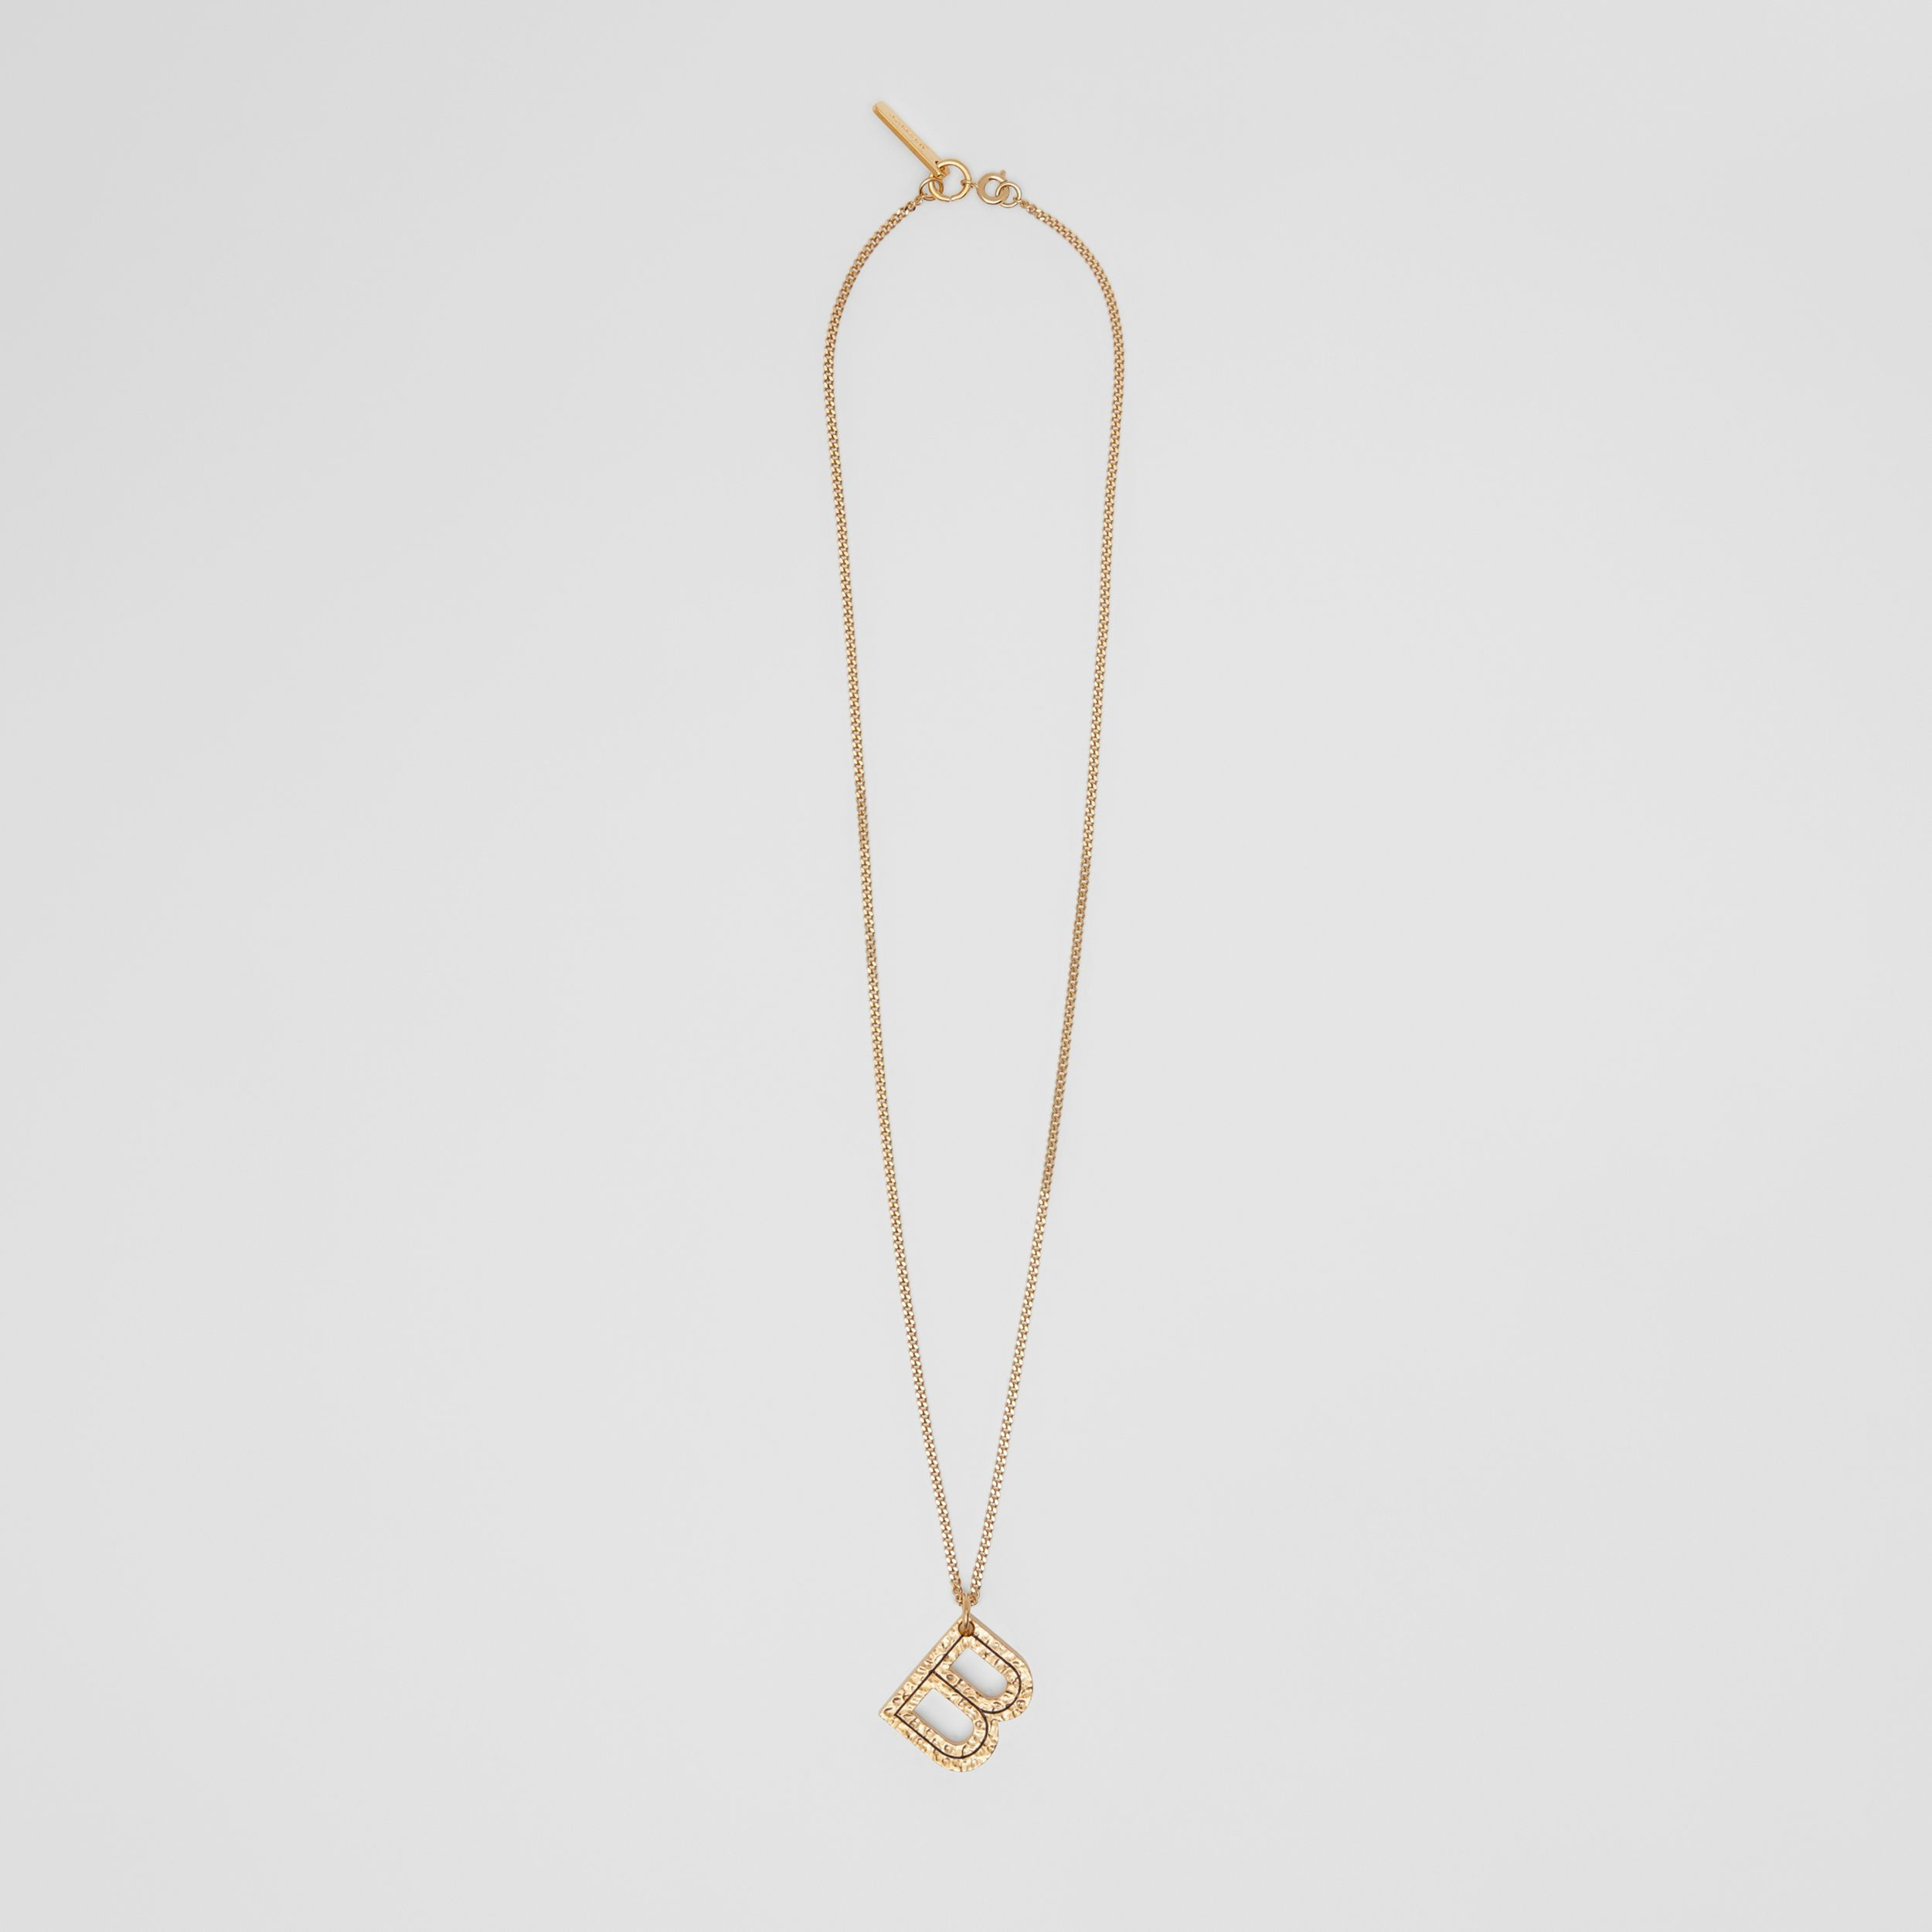 'B' Alphabet Charm Gold-plated Necklace in Light - Women | Burberry United Kingdom - 1